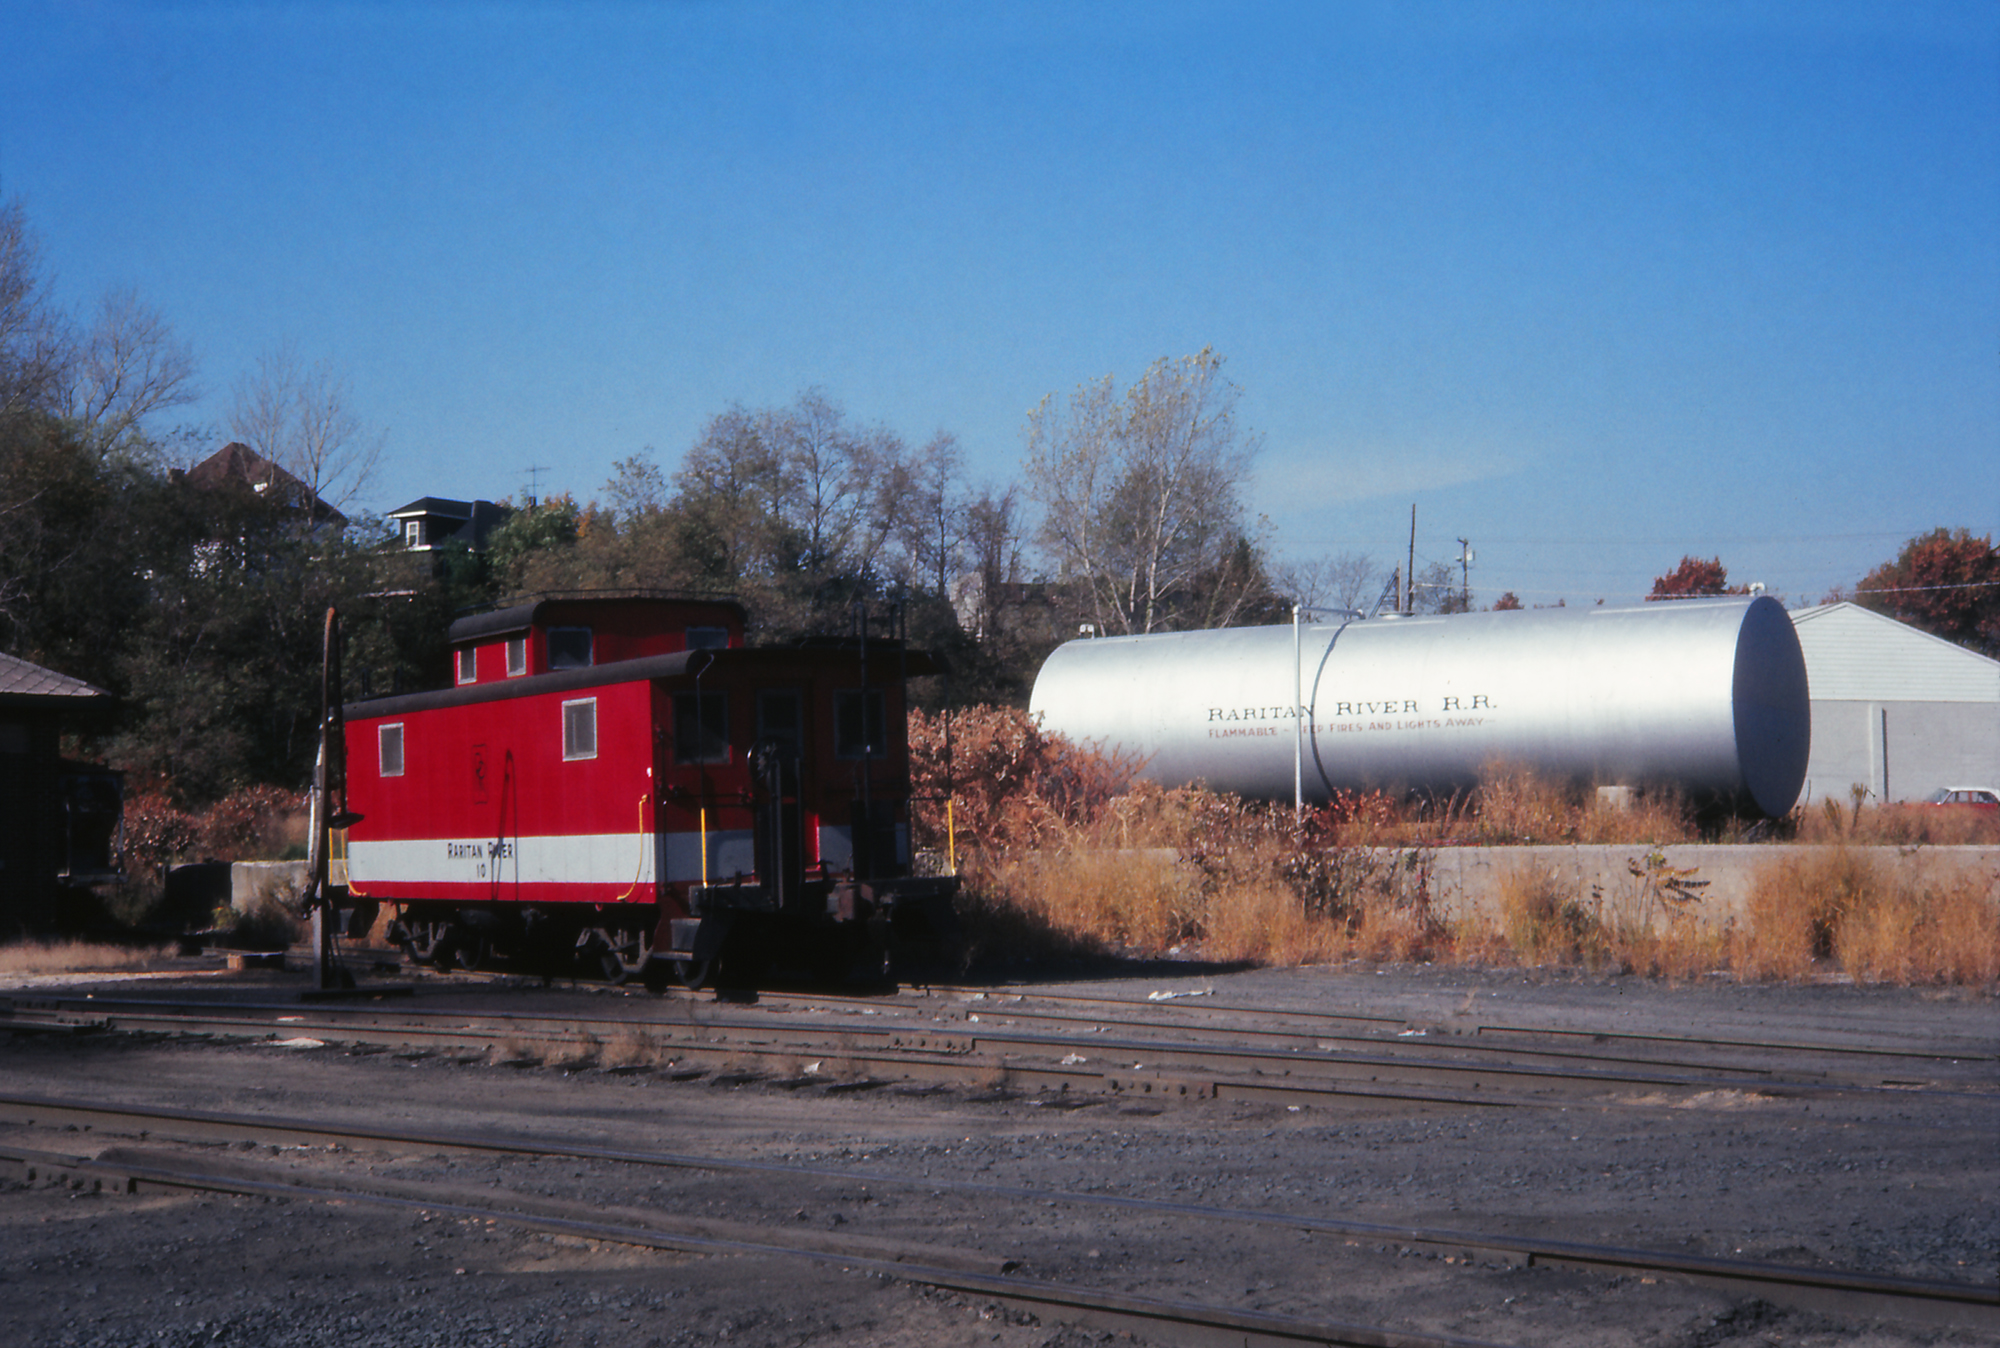 No. 10 at the Raritan River's South Amboy, NJ shop facility on October 28, 1974.  (George Povall photo, Rudy Garbely collection)